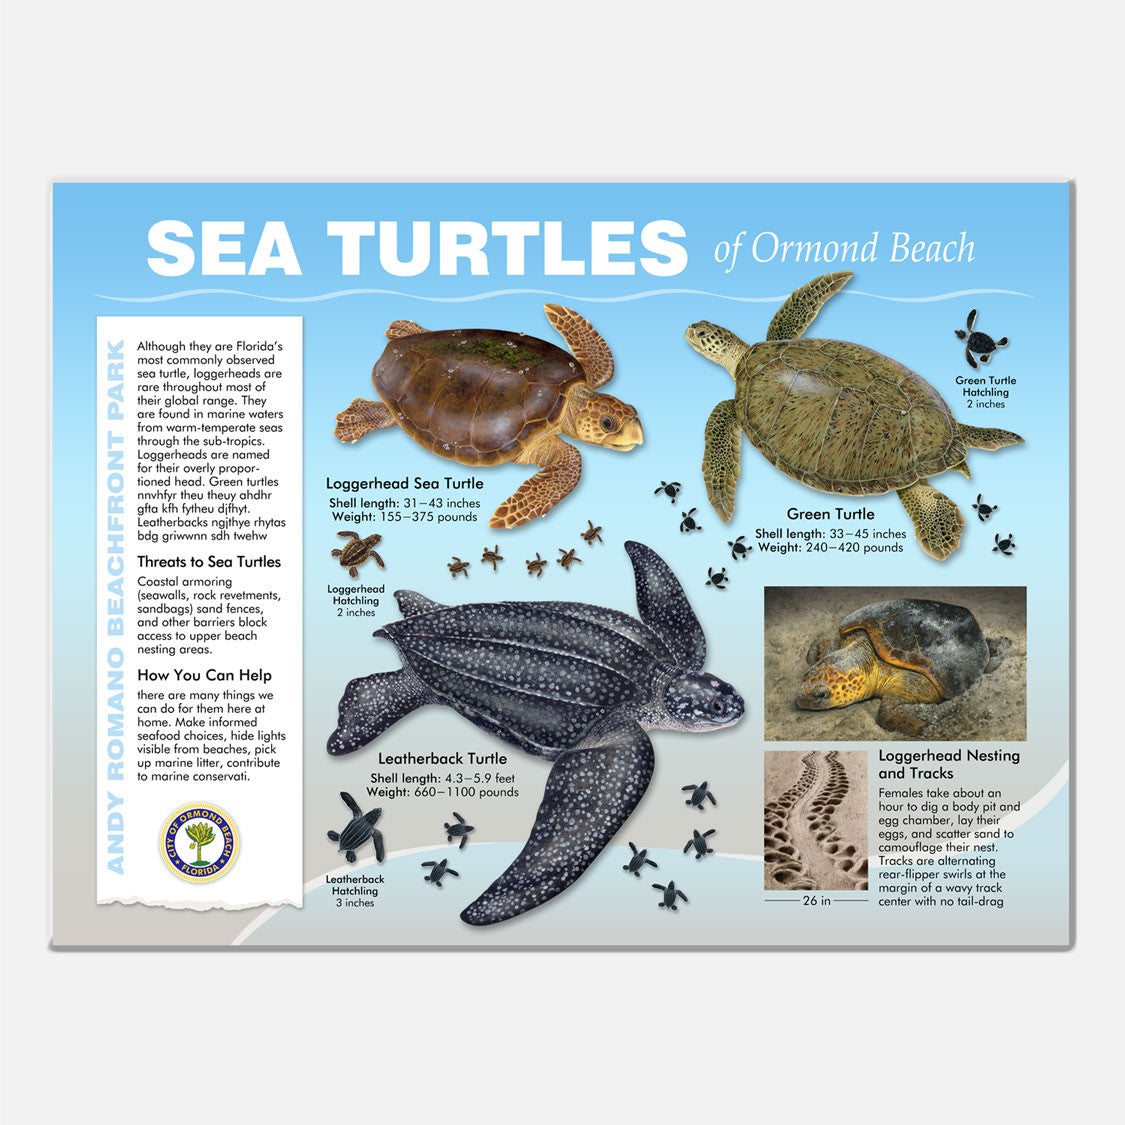 This beautifully illustrated educational display describes and identifies sea turtles that occur at Andy Romano Beachfront Park, Ormond Beach, Florida.